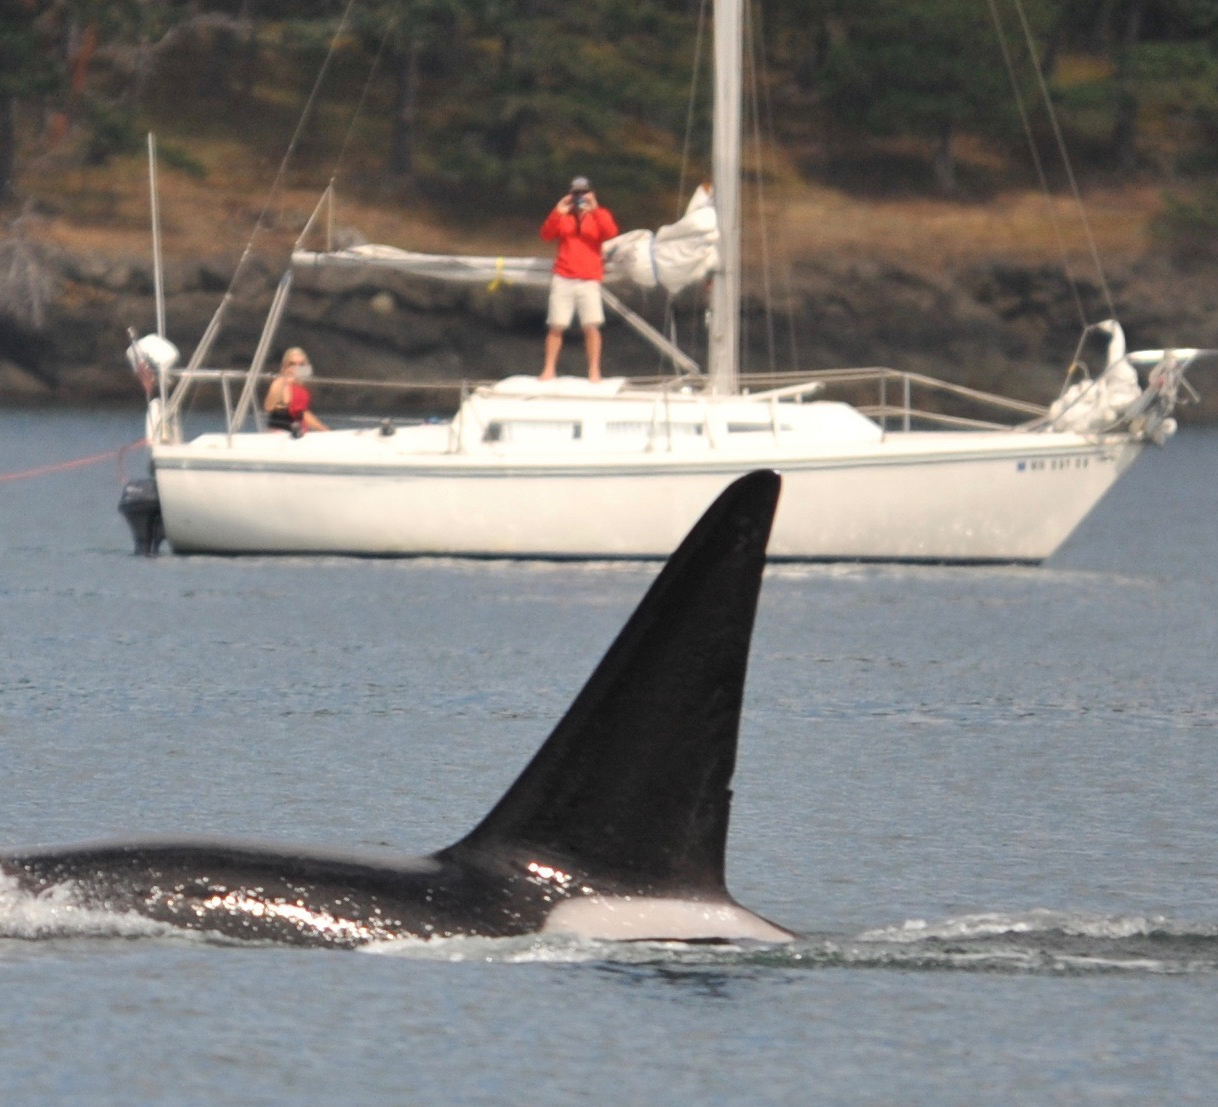 Transient killer whale surfaces in front of a sailboat.